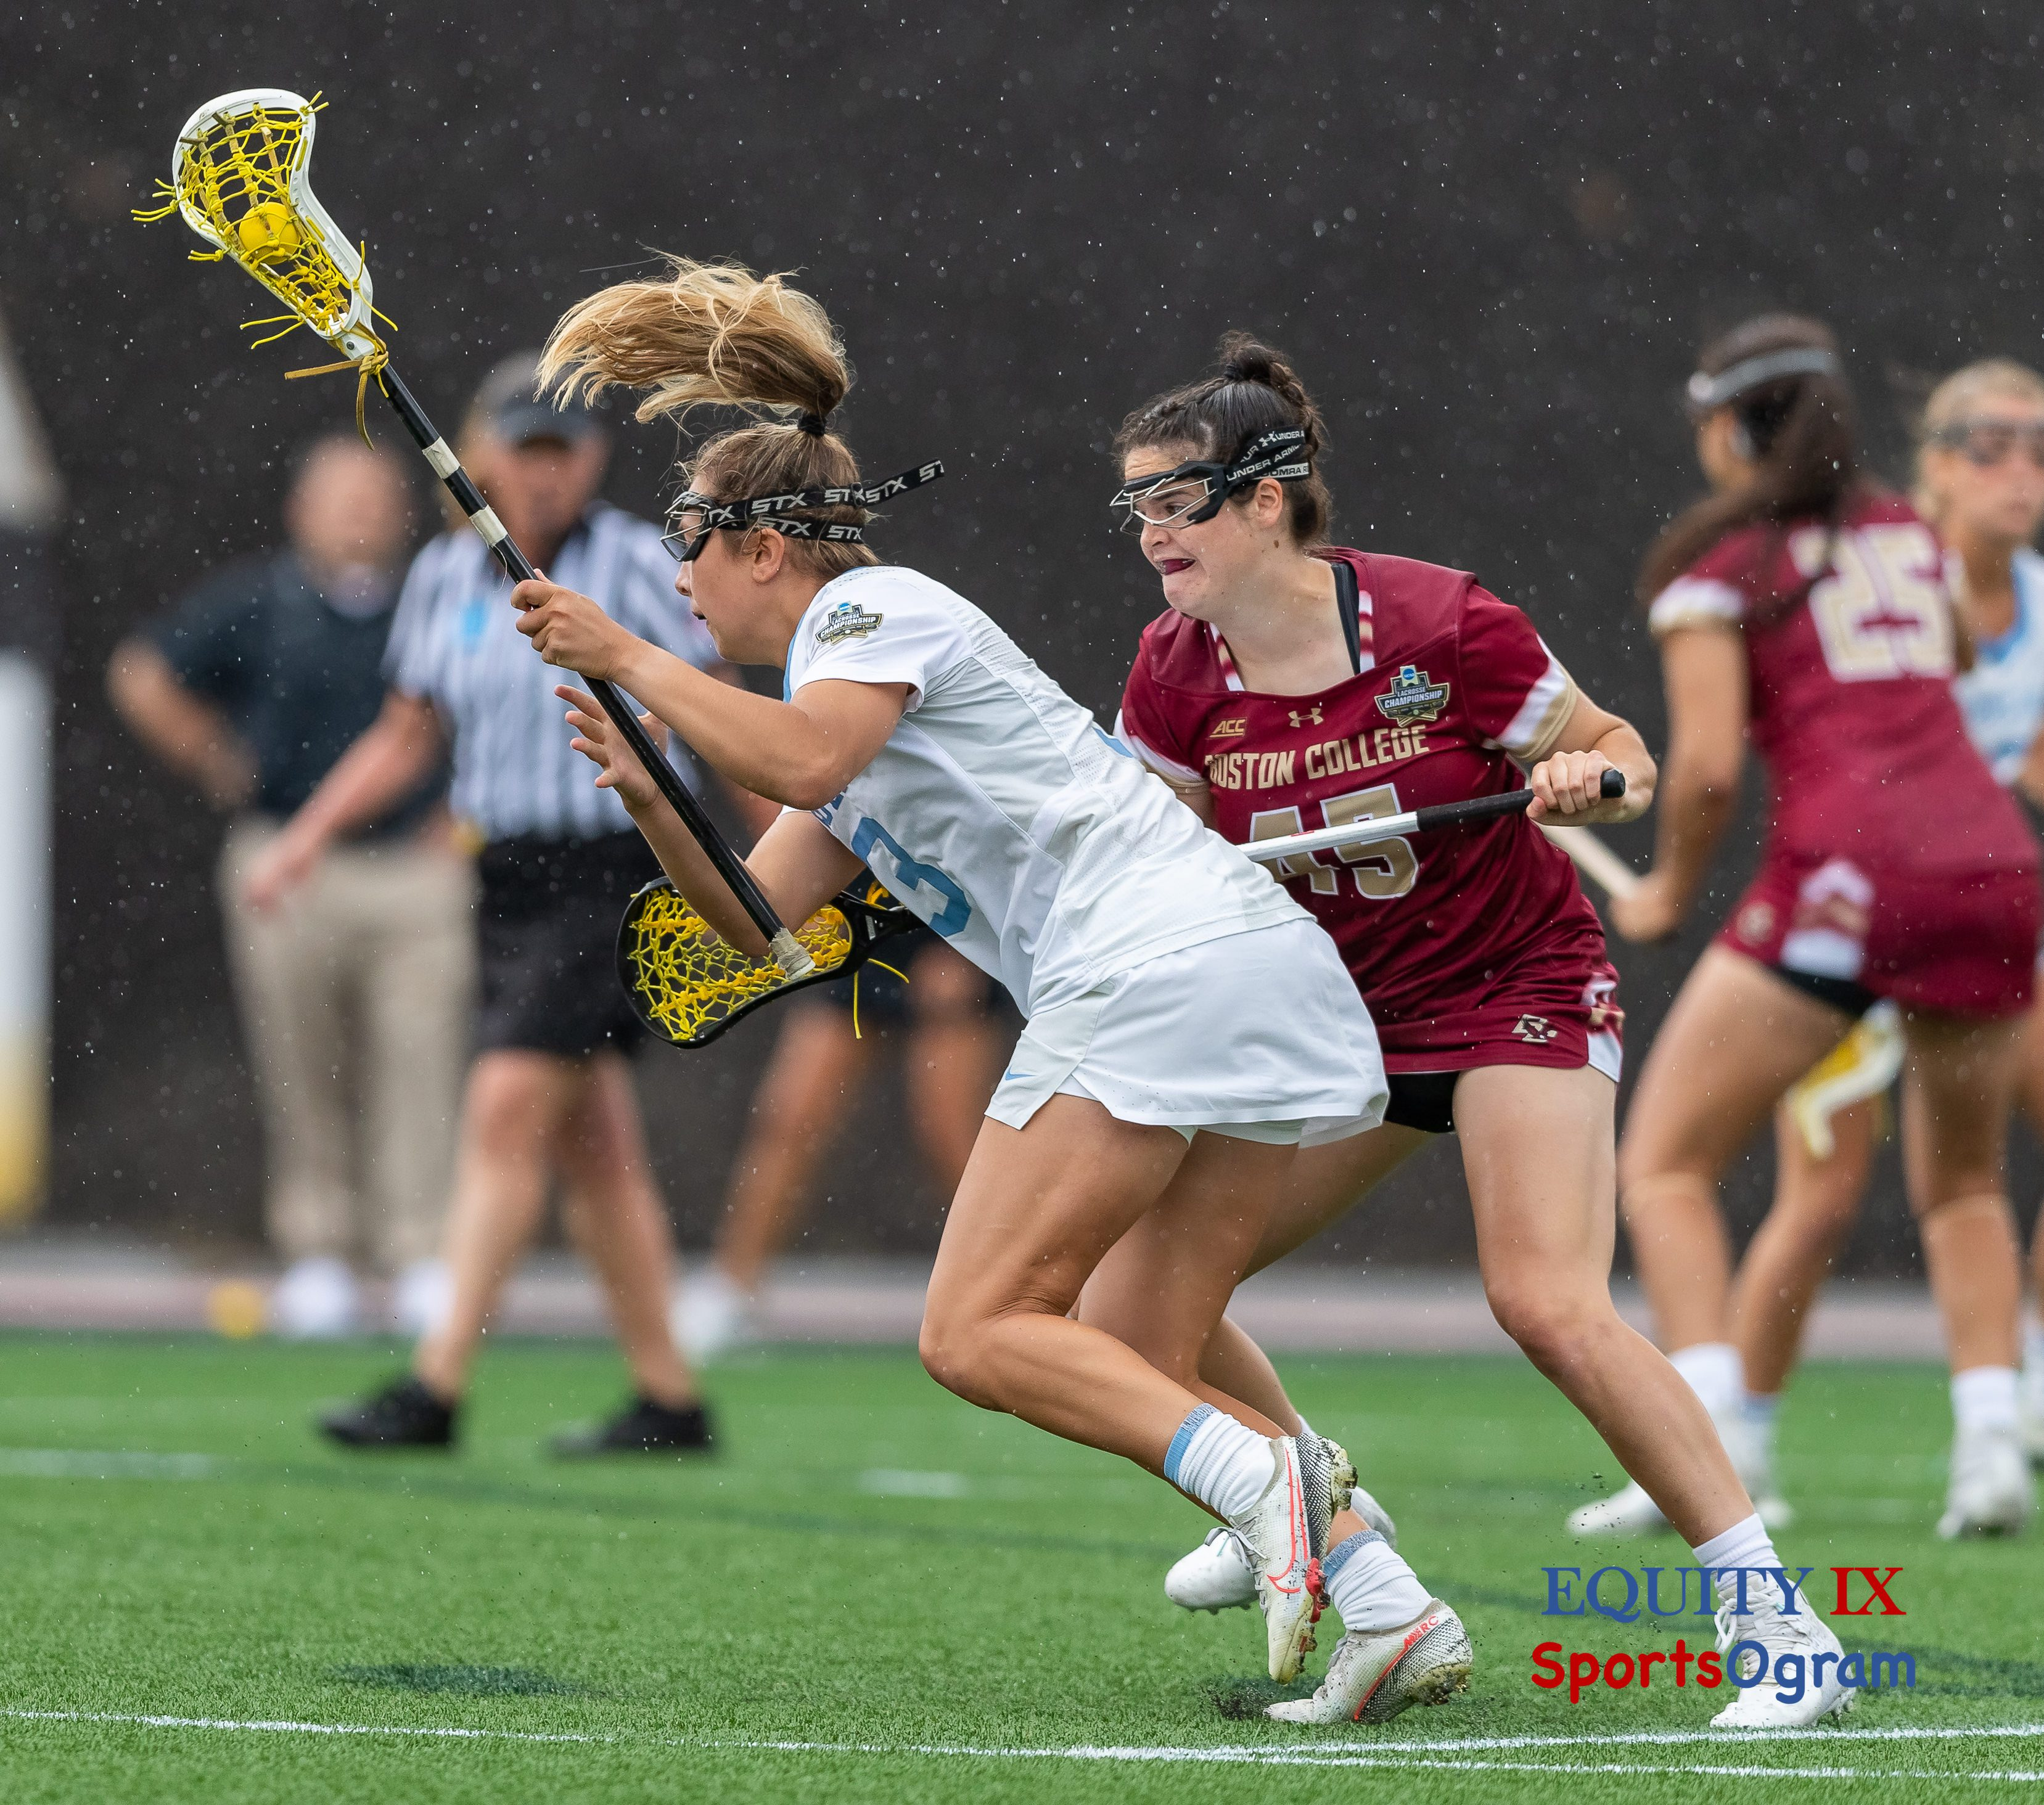 #45 Sydney Scales (Boston College defender) forces #3 Jamie Ortega (UNC) away from her dominant left side cradling yellow lacrosse ball one handed in the rain - 2021 NCAA Women's Lacrosse Final Four © Equity IX - SportsOgram - Leigh Ernst Friestedt